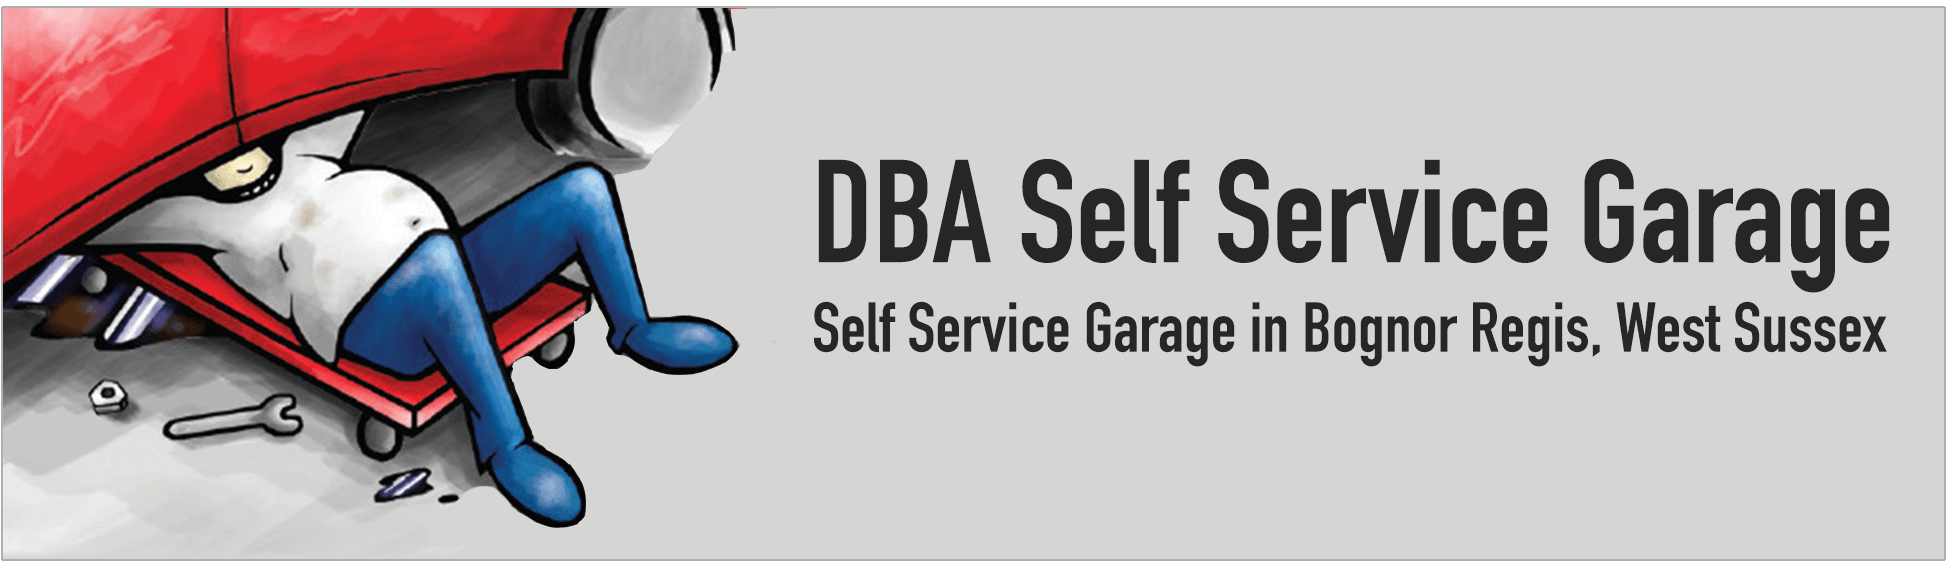 dba self service garage bognor regis do it yourself garage. Black Bedroom Furniture Sets. Home Design Ideas